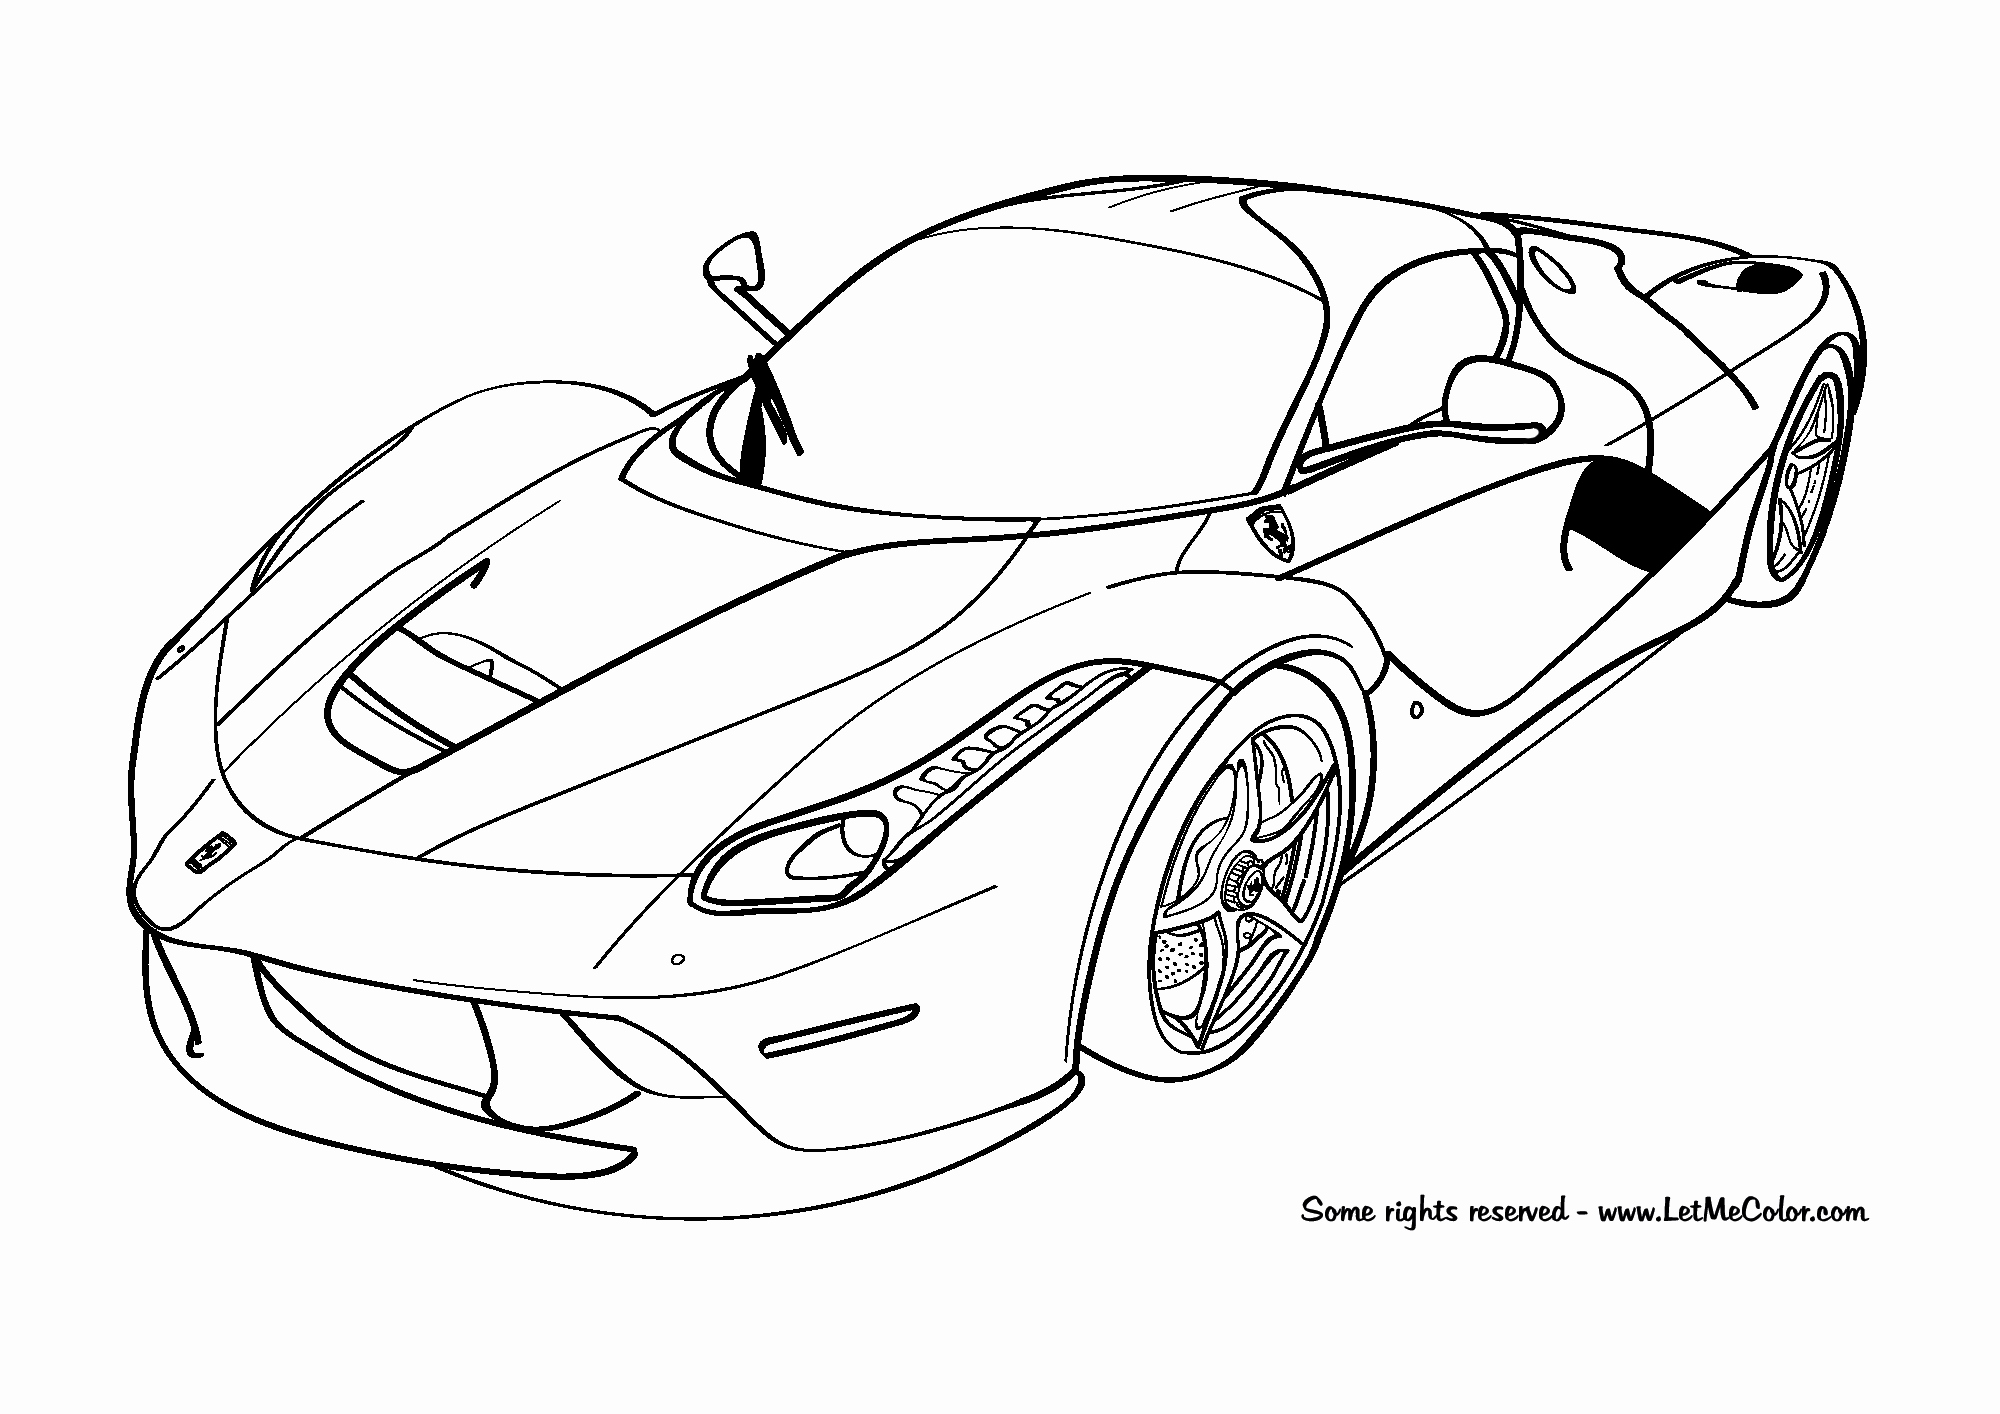 Lamborghini Car Coloring Pages At Getdrawings Com Free For